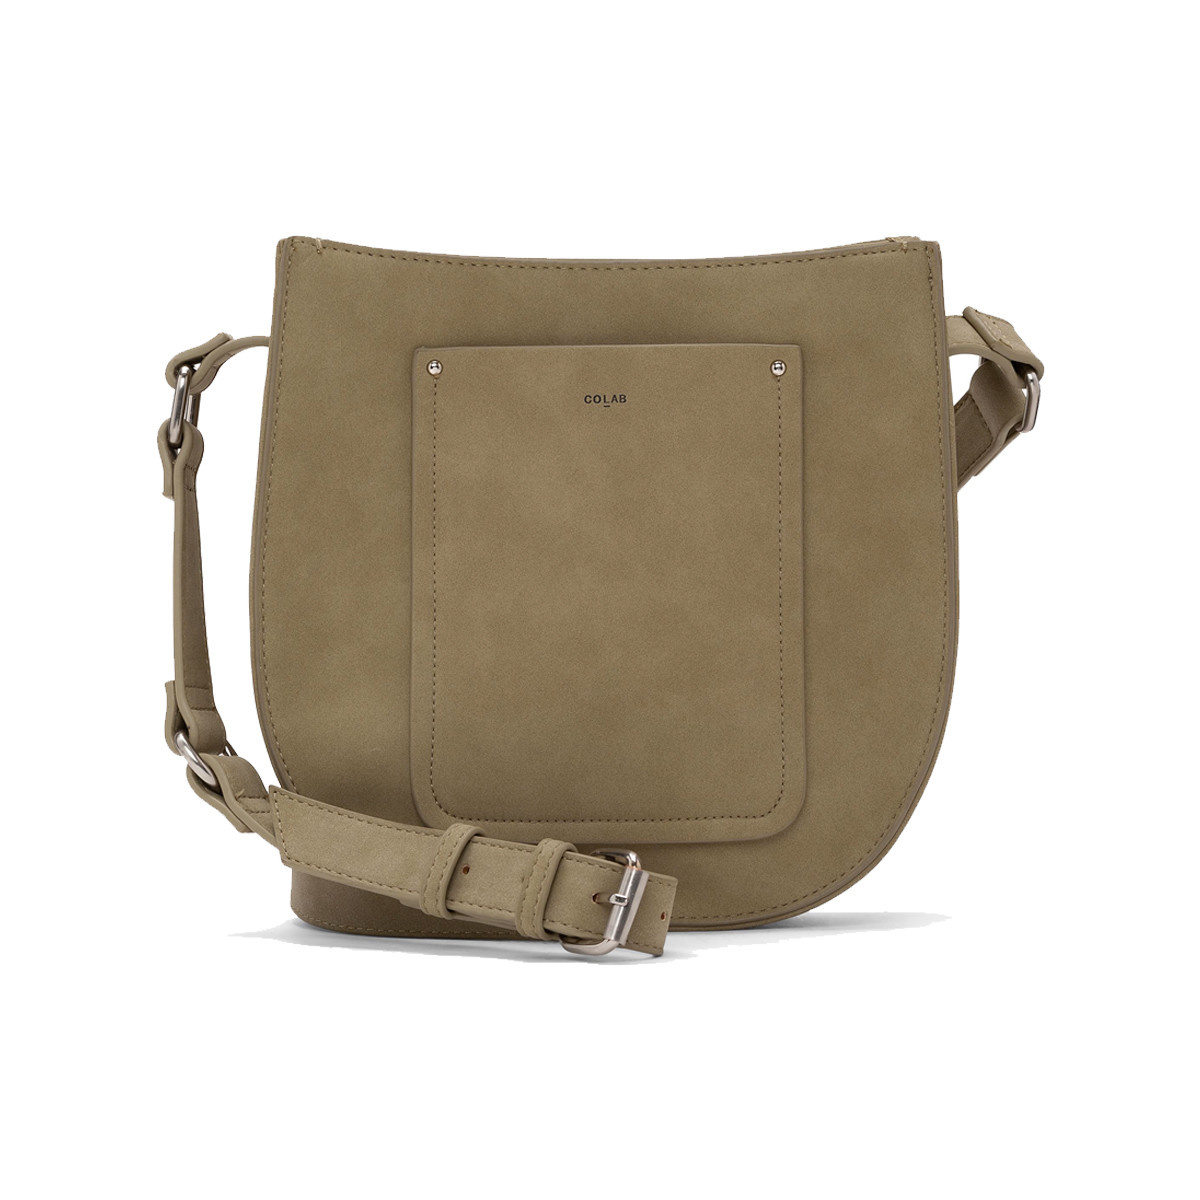 Colab Colab Seddle Vegan Suede Crossbody